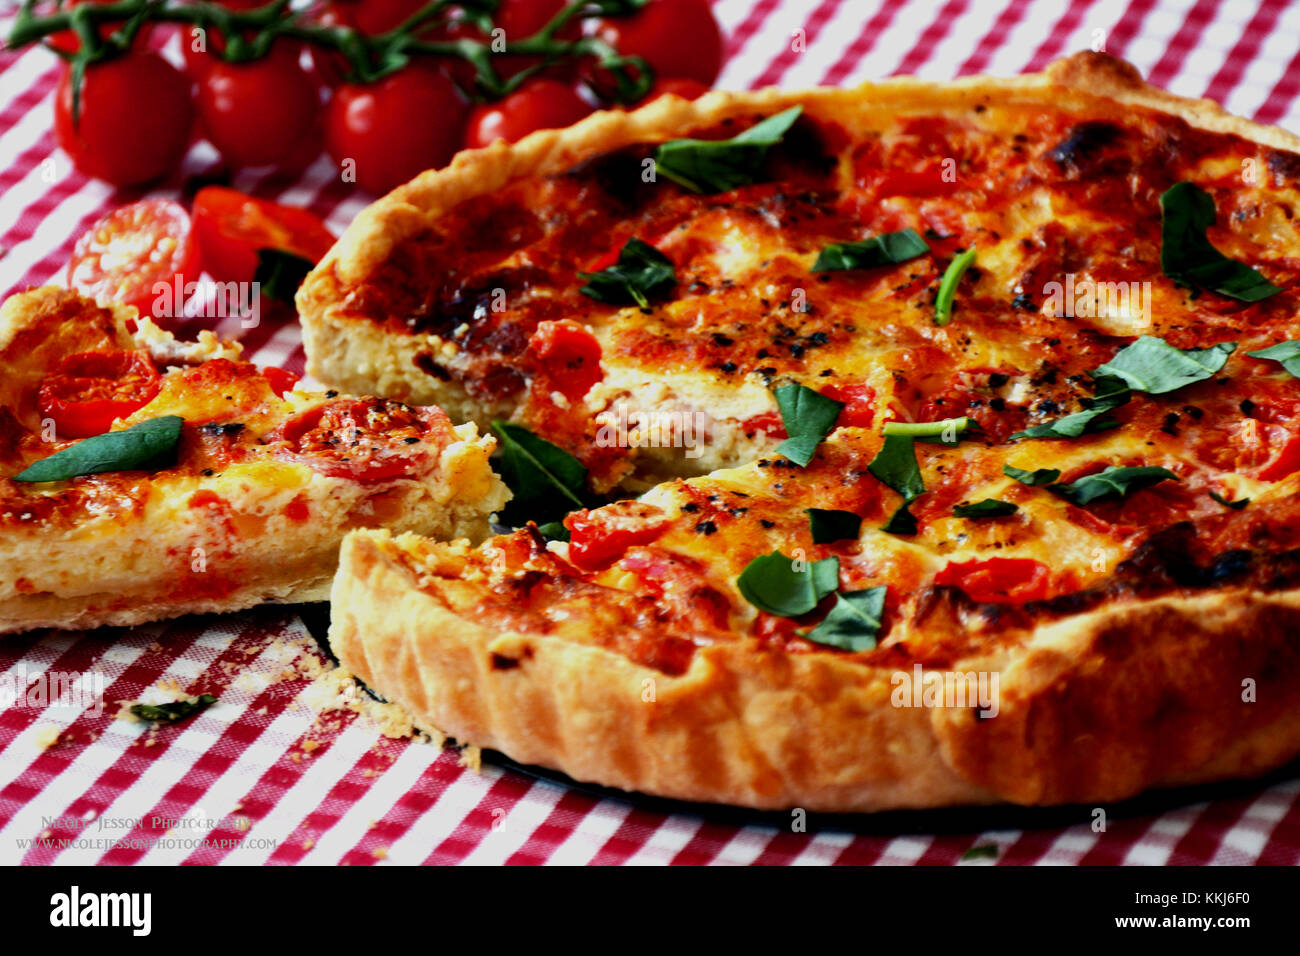 Slice of Quiche anyone? - Stock Image